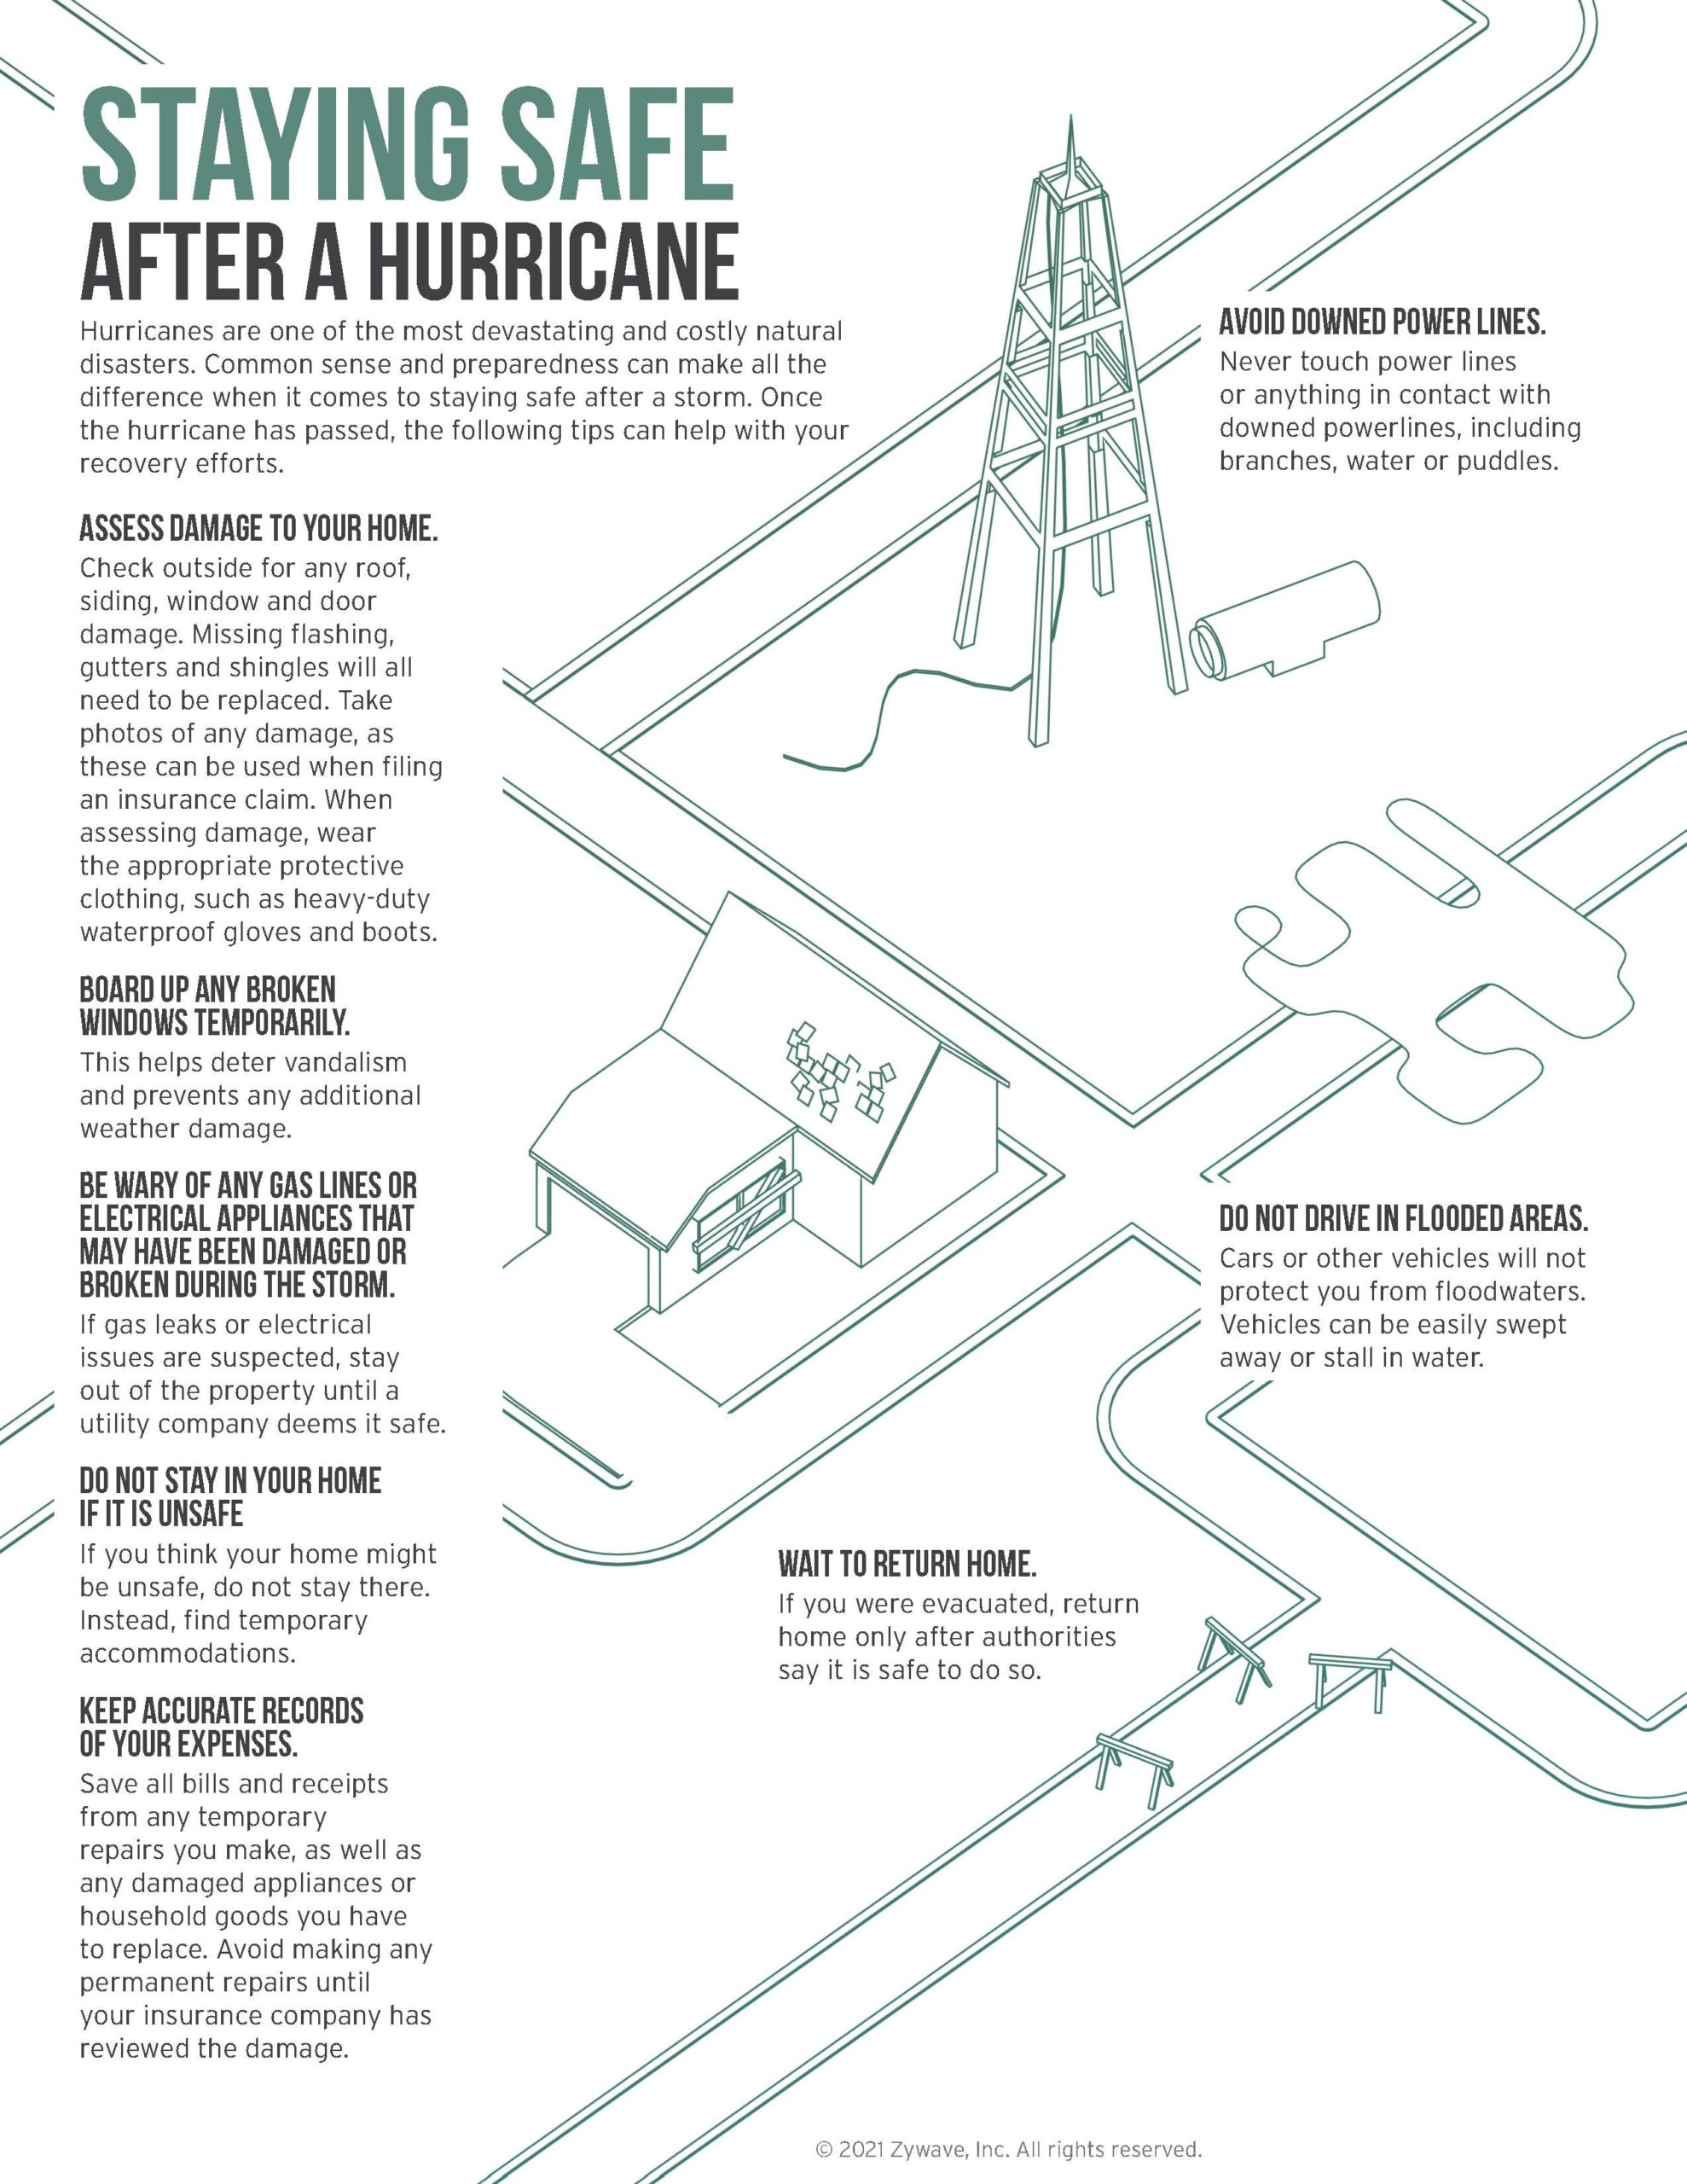 Staying Safe After a Hurricane